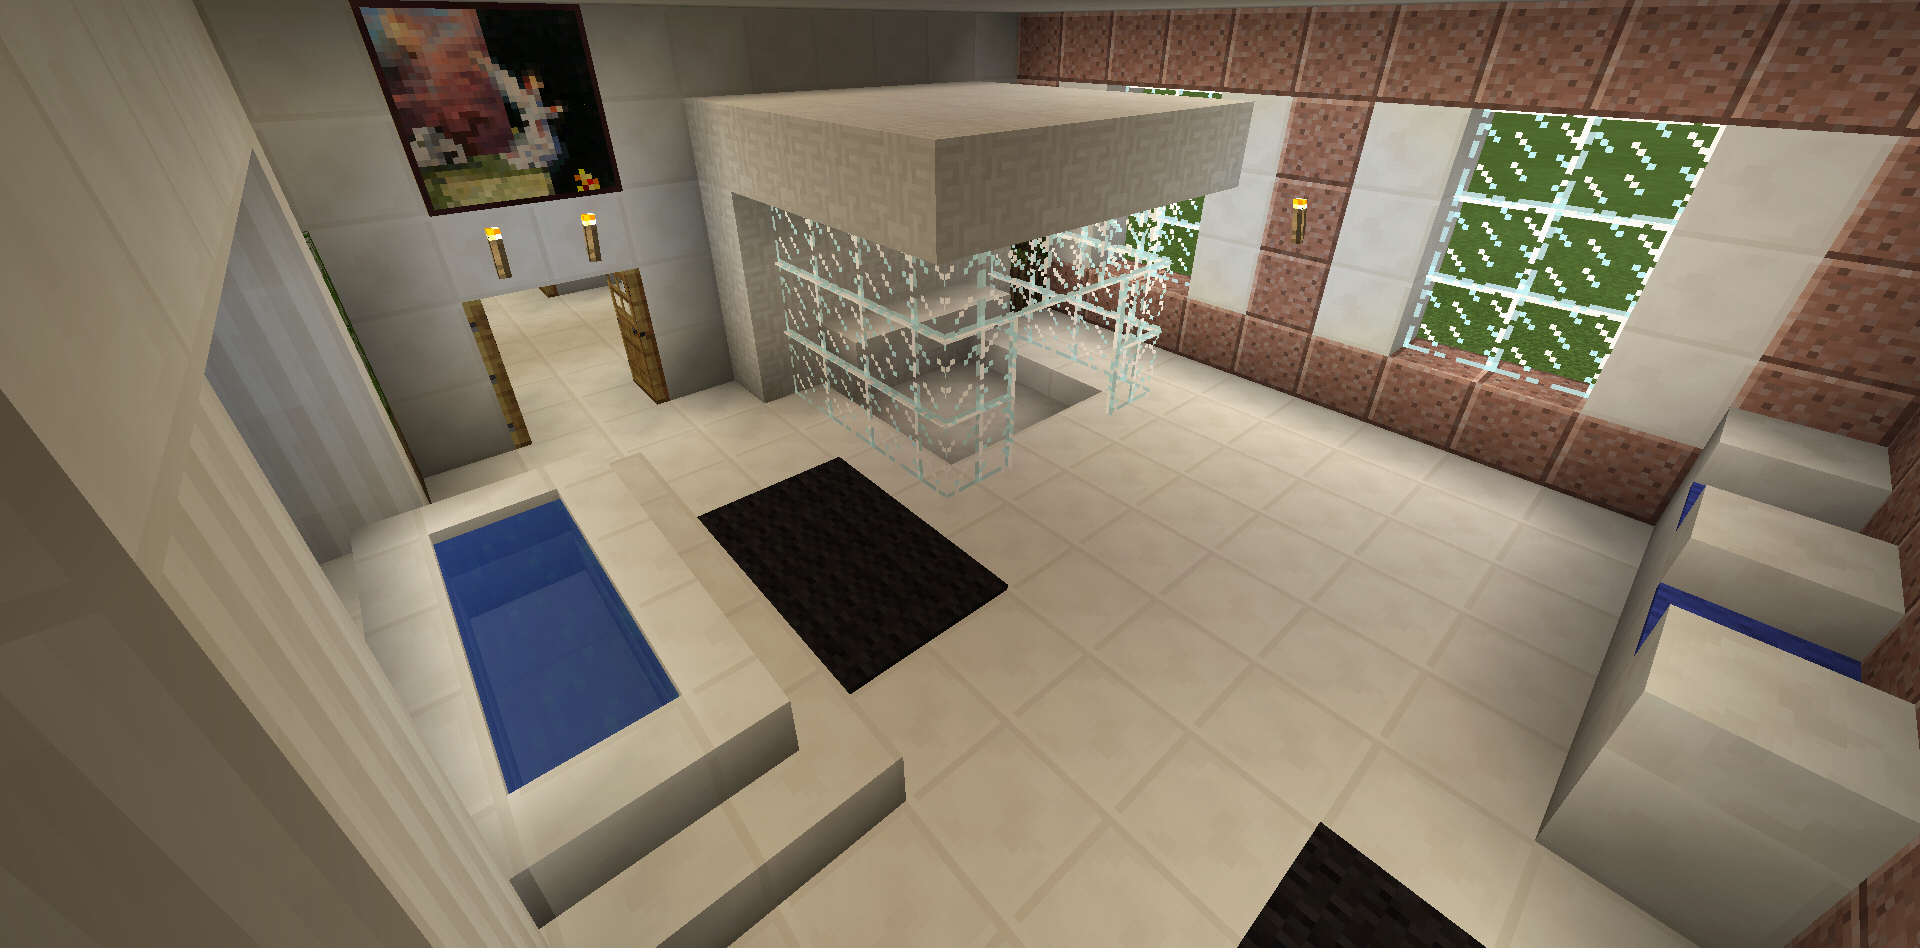 minecraft bathroom glass shower garden tub sink - Bathroom Ideas Minecraft